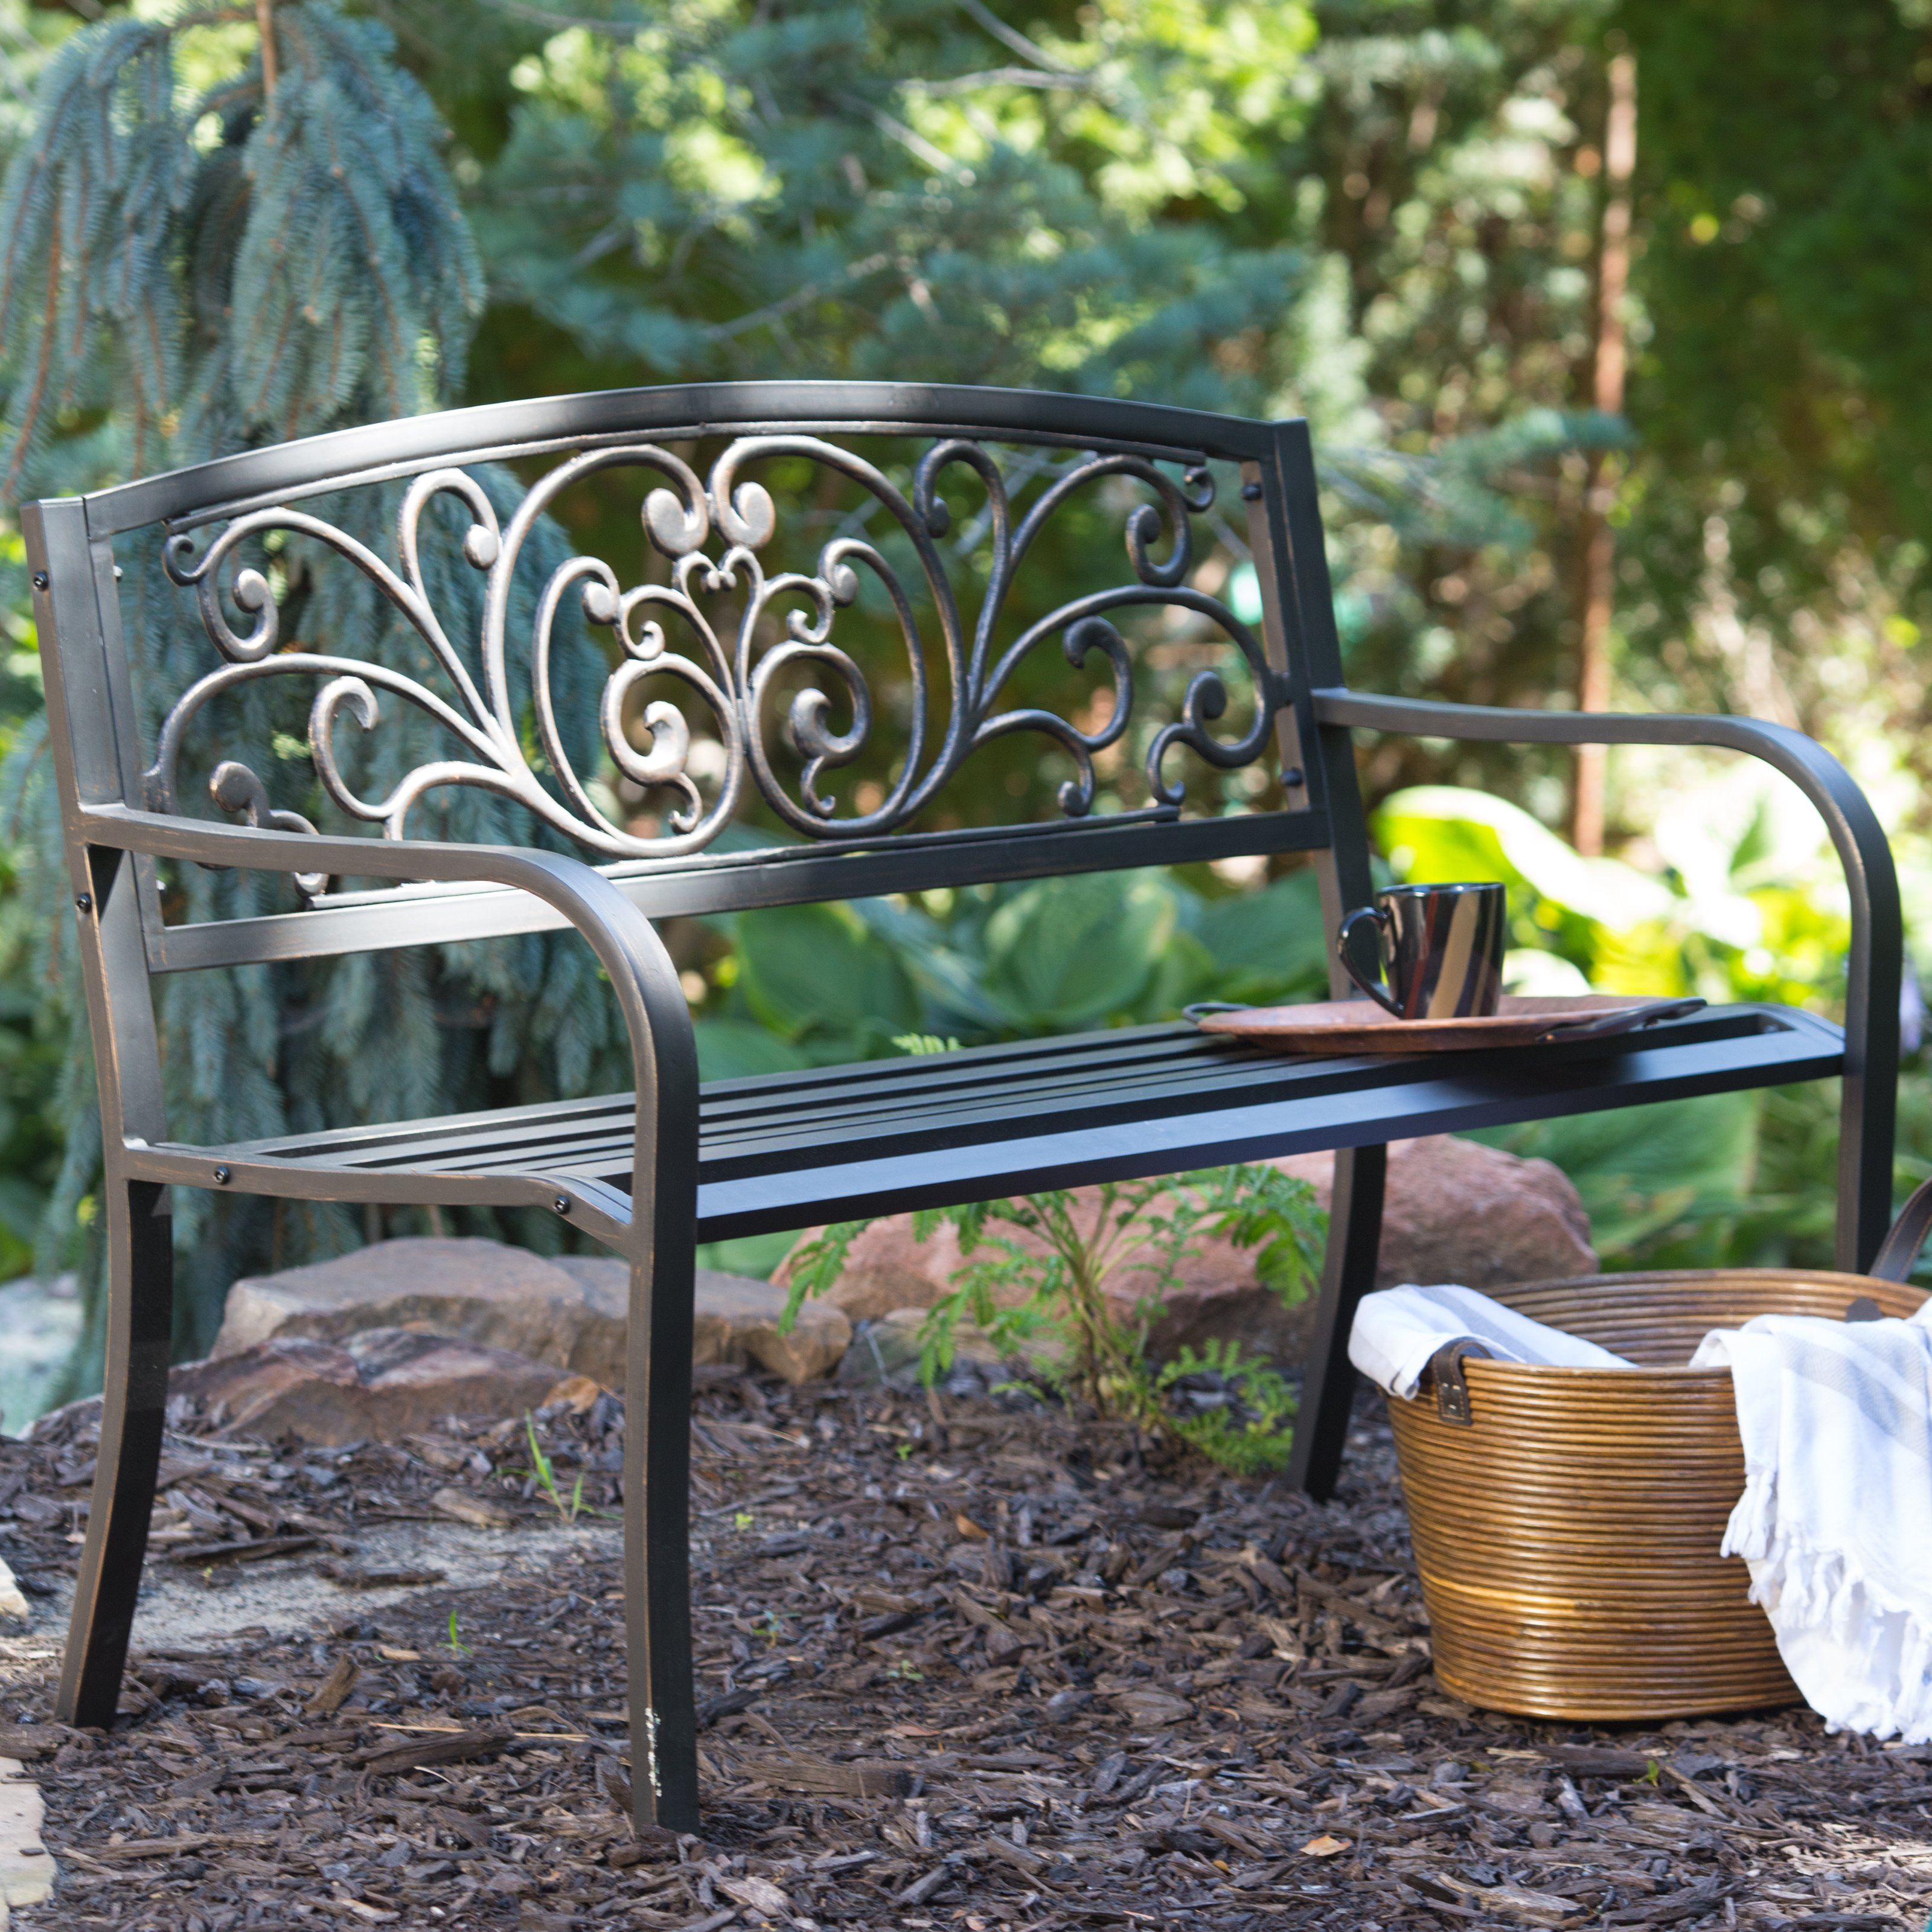 Compact garden benches curved-back garden bench | hayneedle ykgygnp